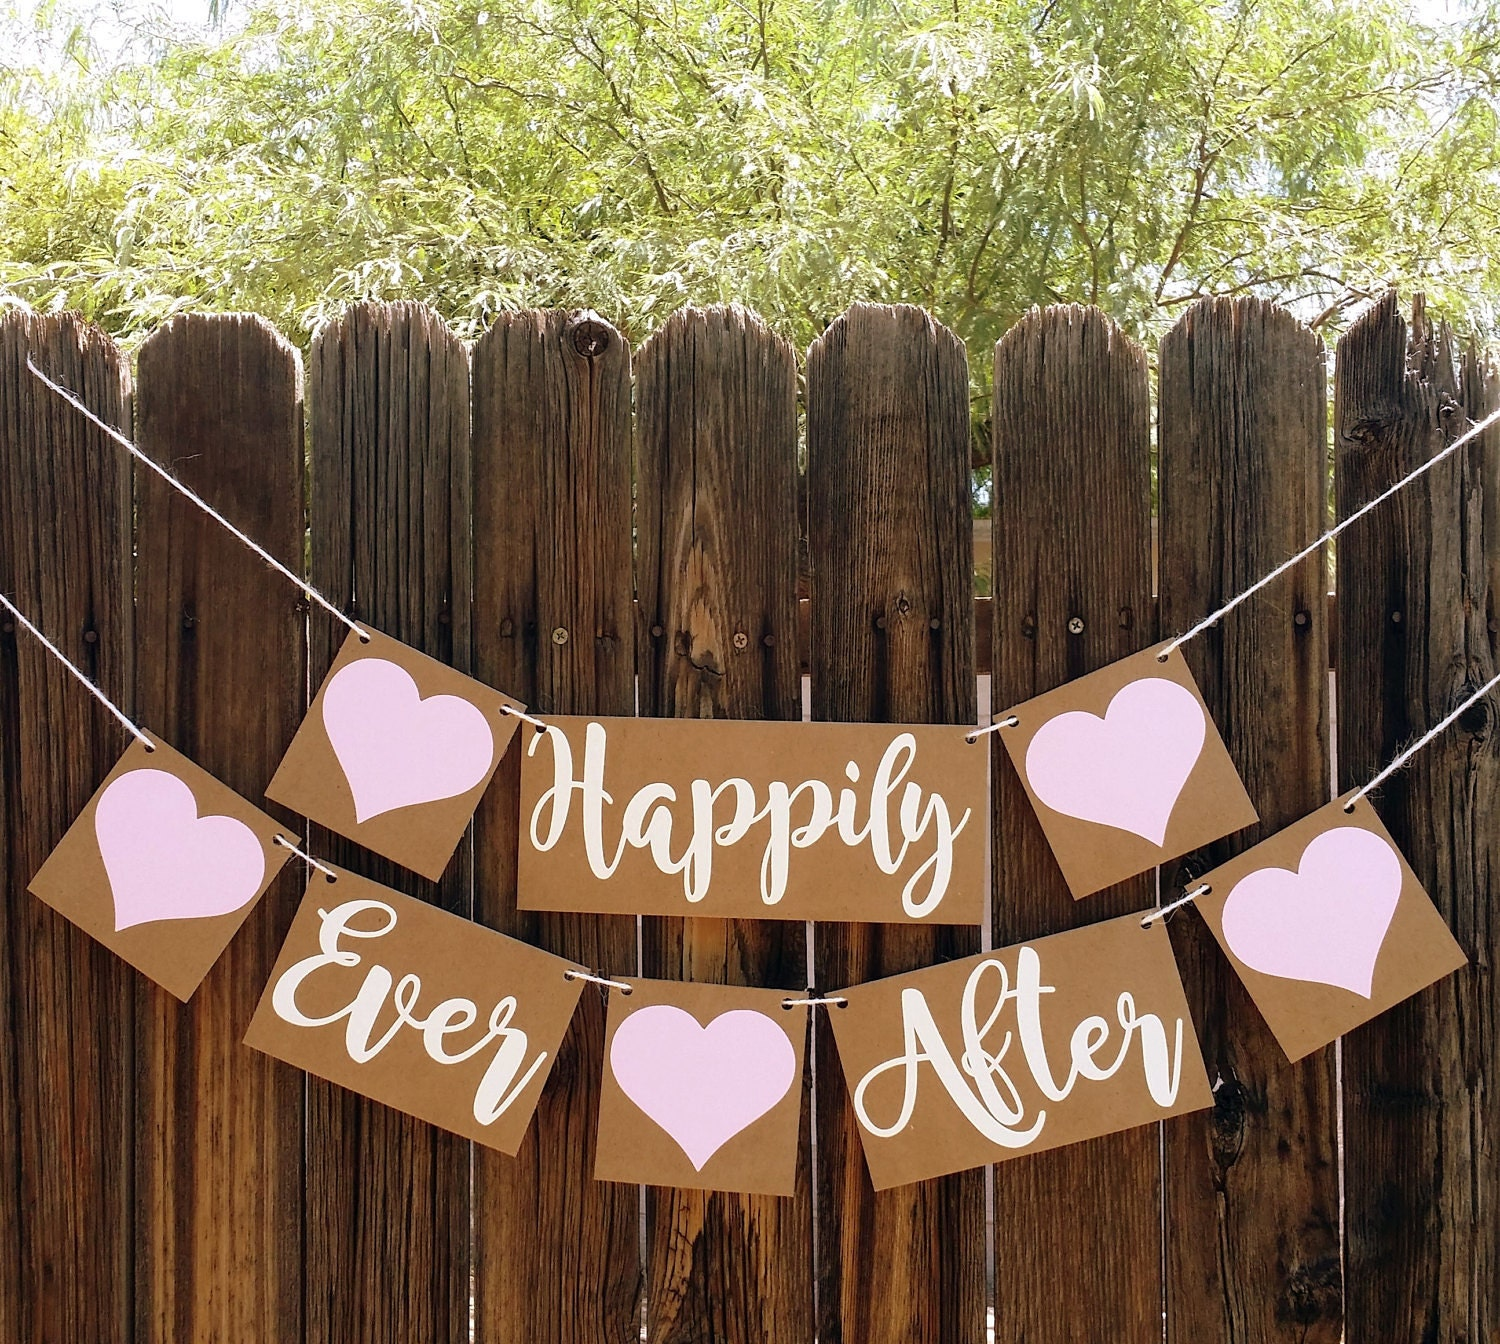 Clean & Contemporary Inspired Banners by BannerCheer on Etsy